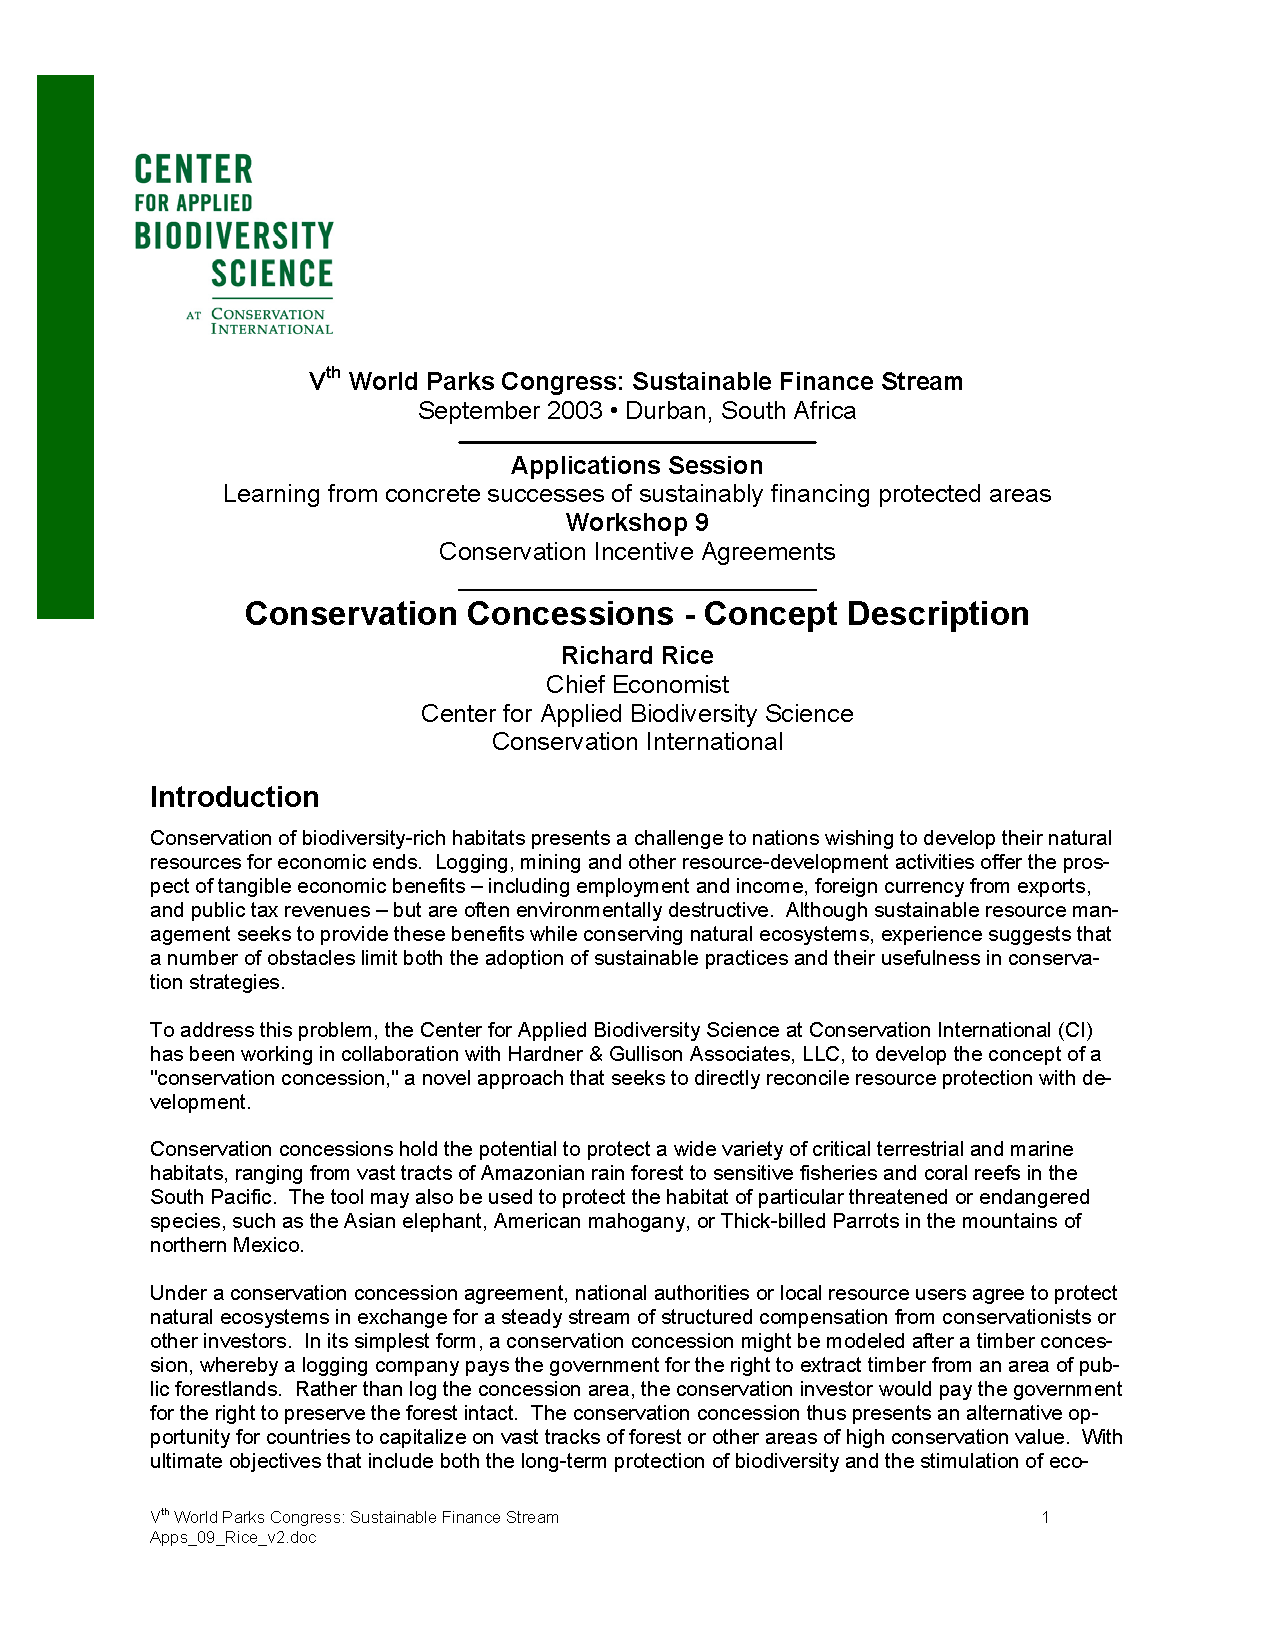 Capa da Conservation Concessions - Concept Description